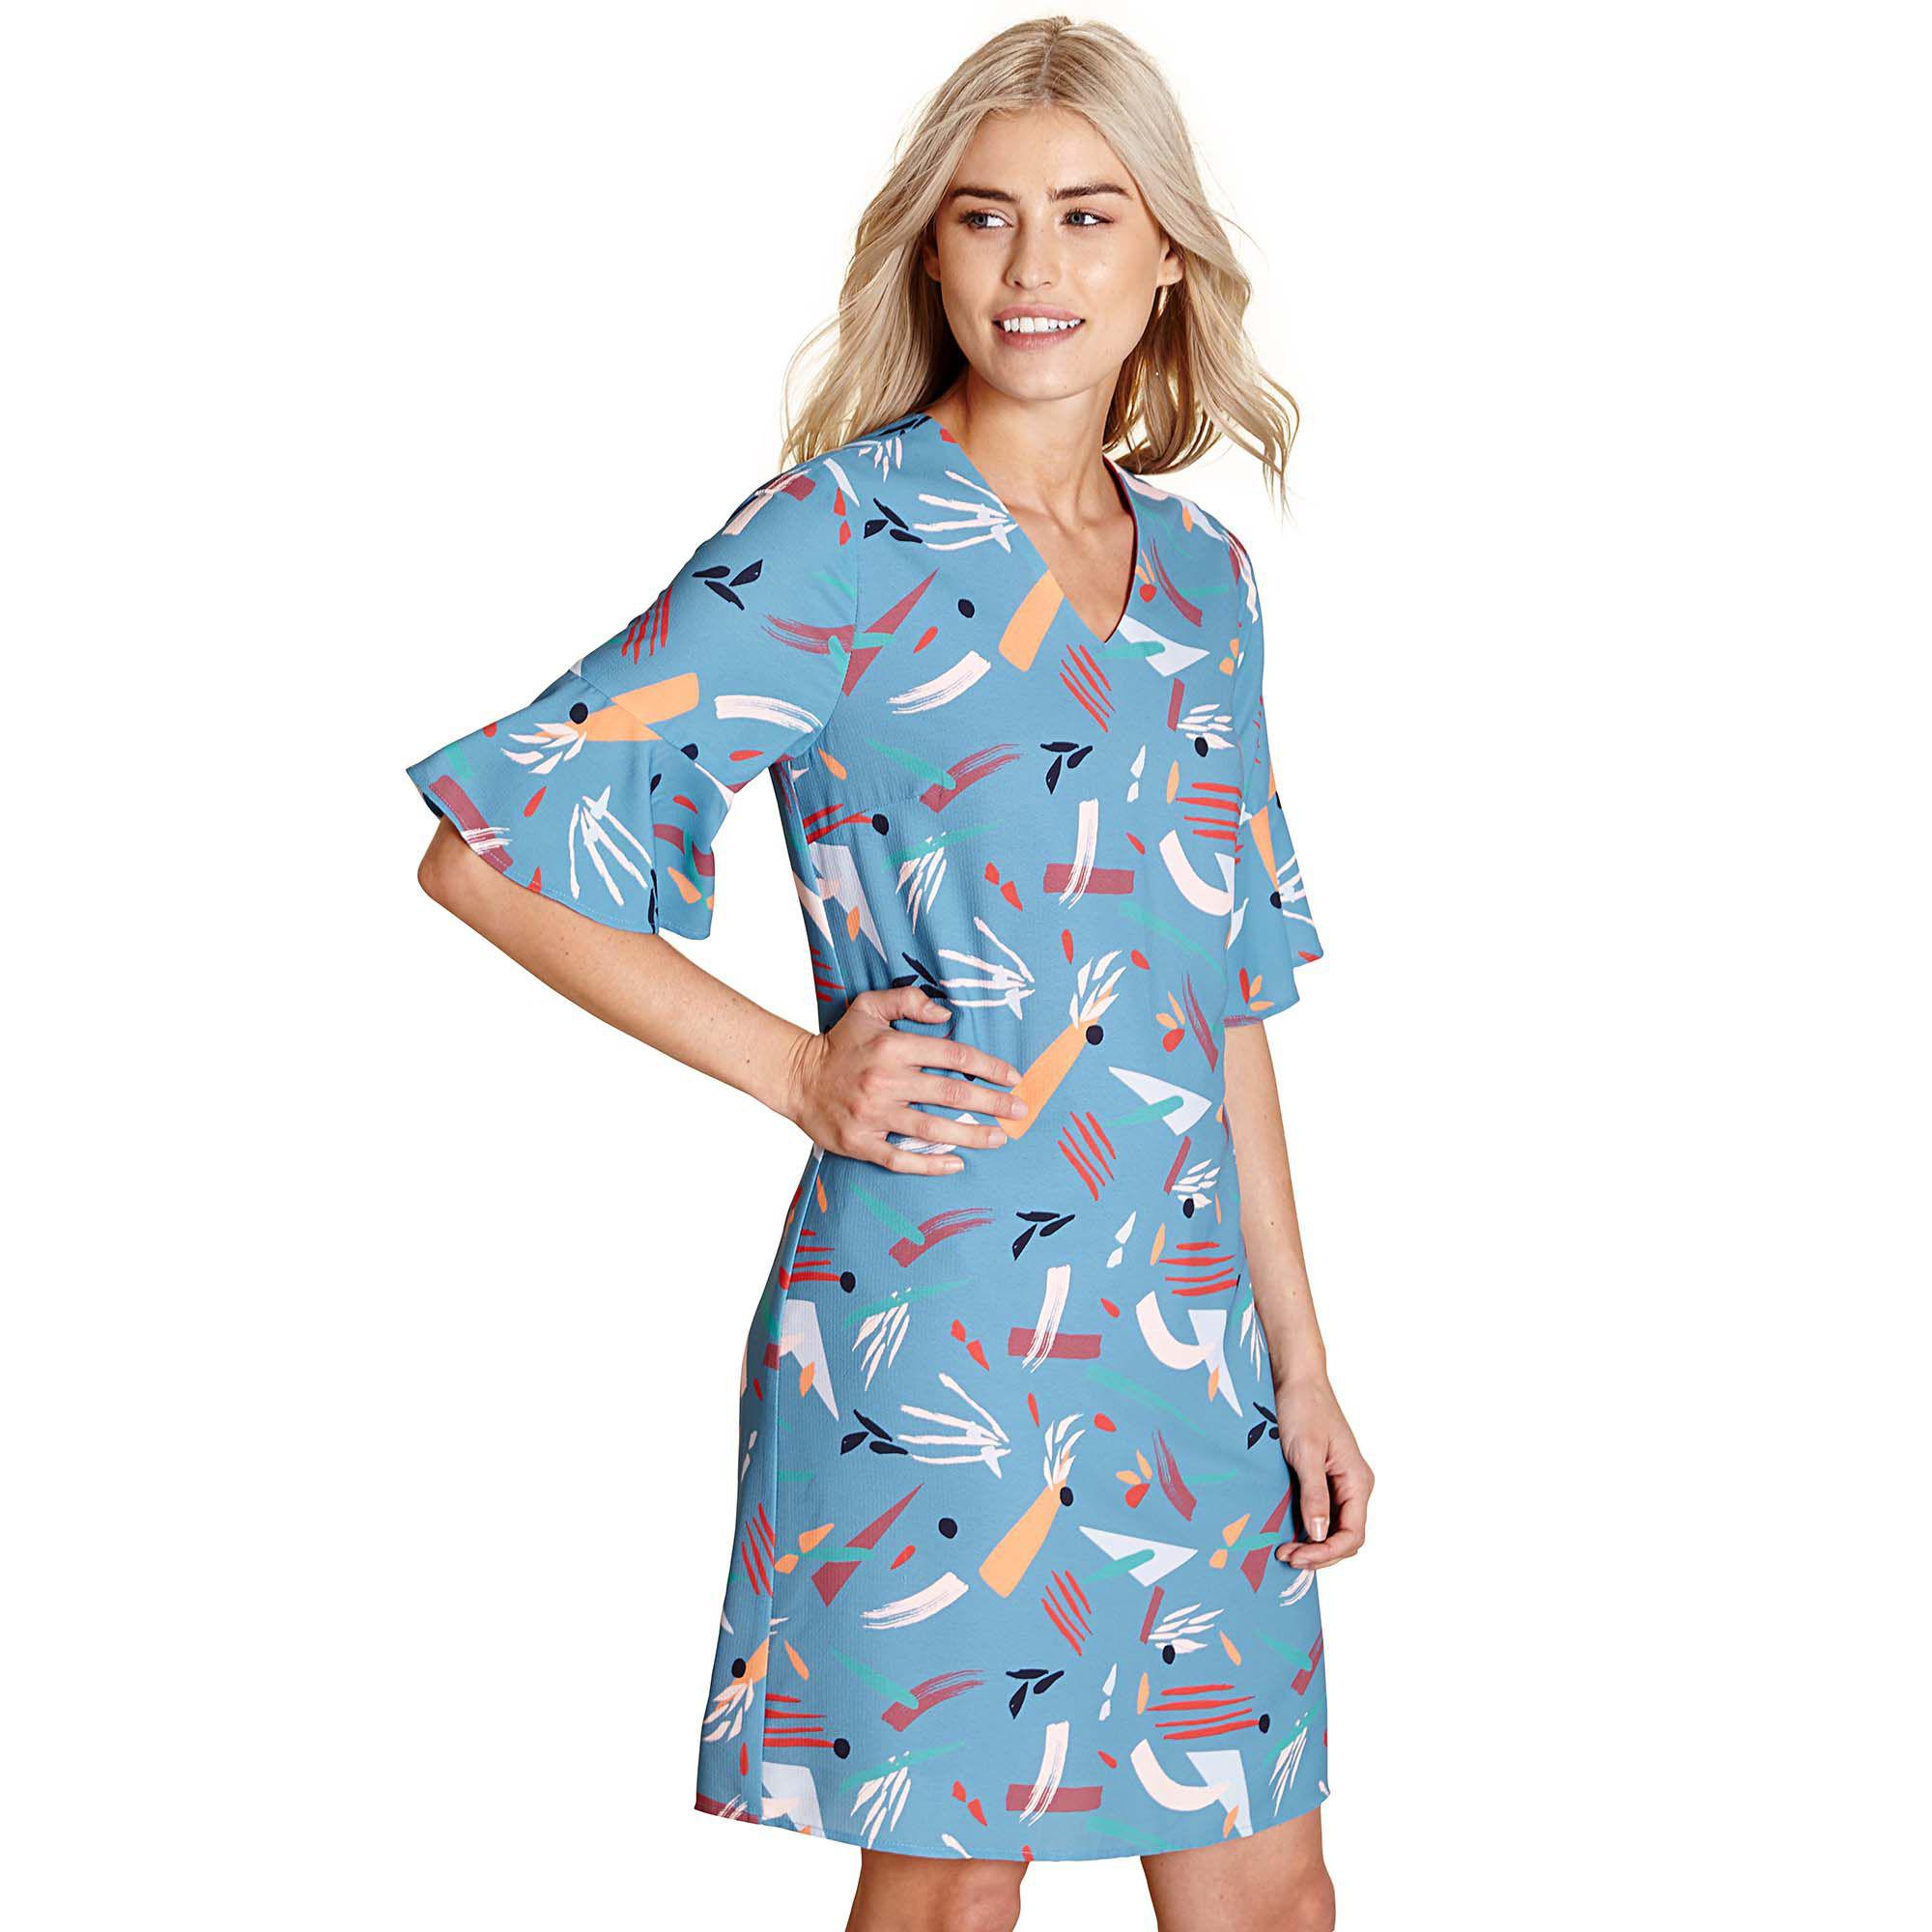 7e8e81a172d Yumi' Light Blue Abstract Print 'canei' Tunic Dress in Blue - Lyst